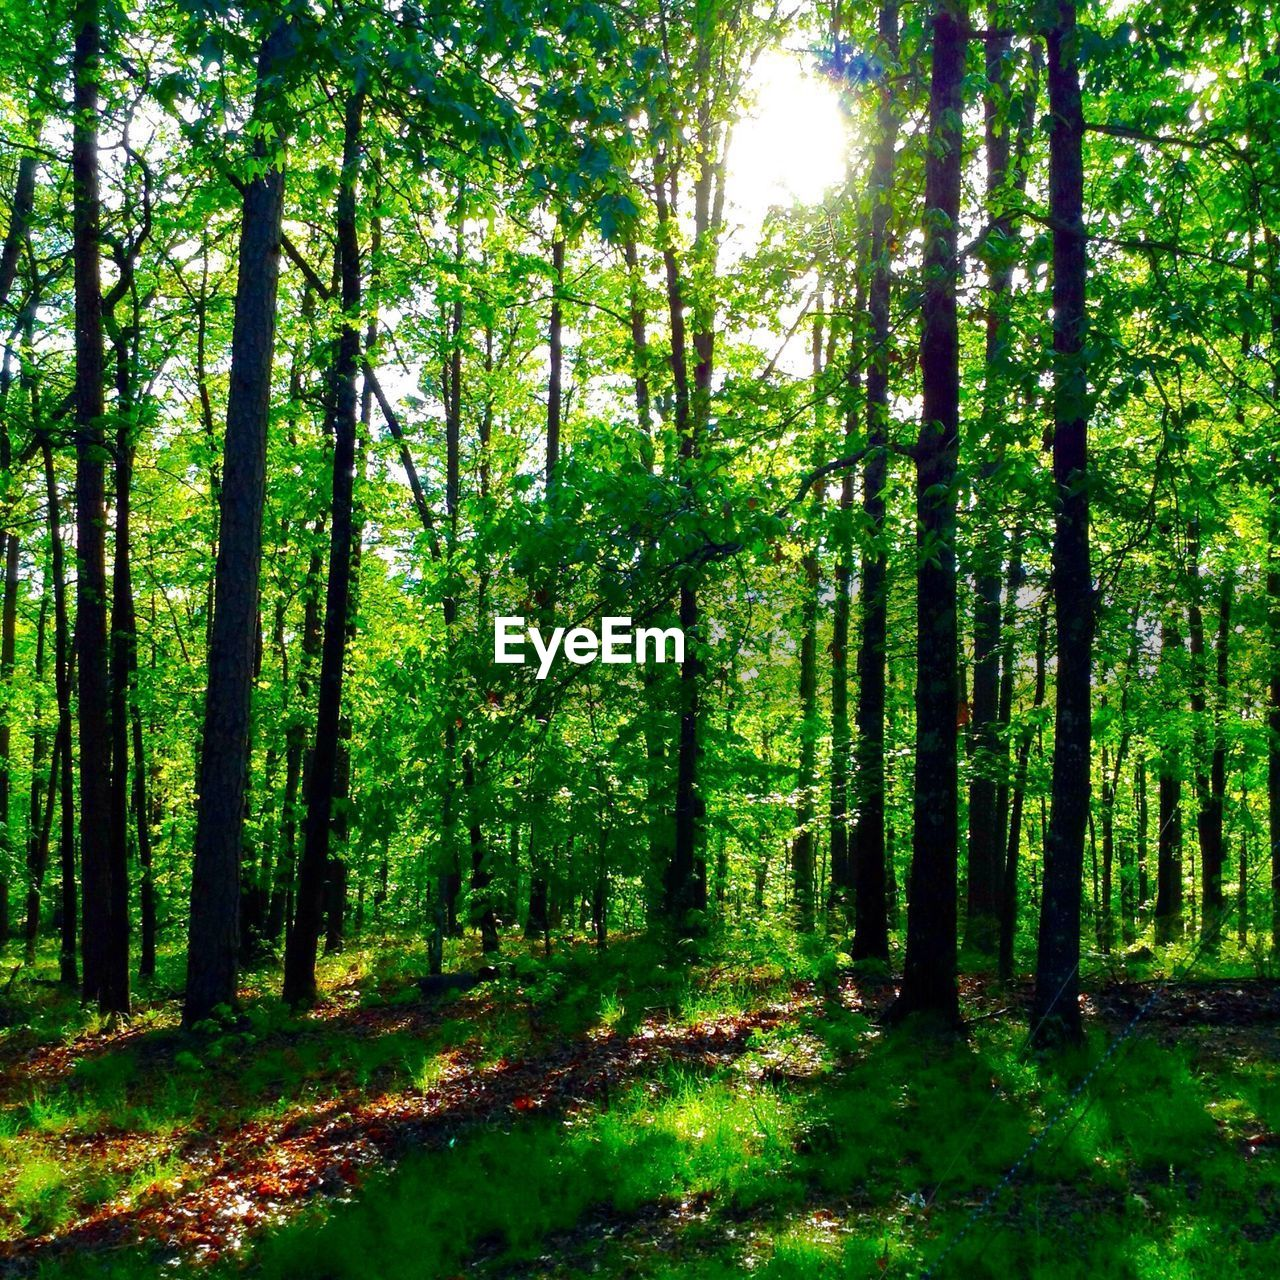 forest, tree, nature, tranquility, tranquil scene, sunbeam, beauty in nature, scenics, tree trunk, woodland, growth, day, no people, sunlight, wilderness, outdoors, landscape